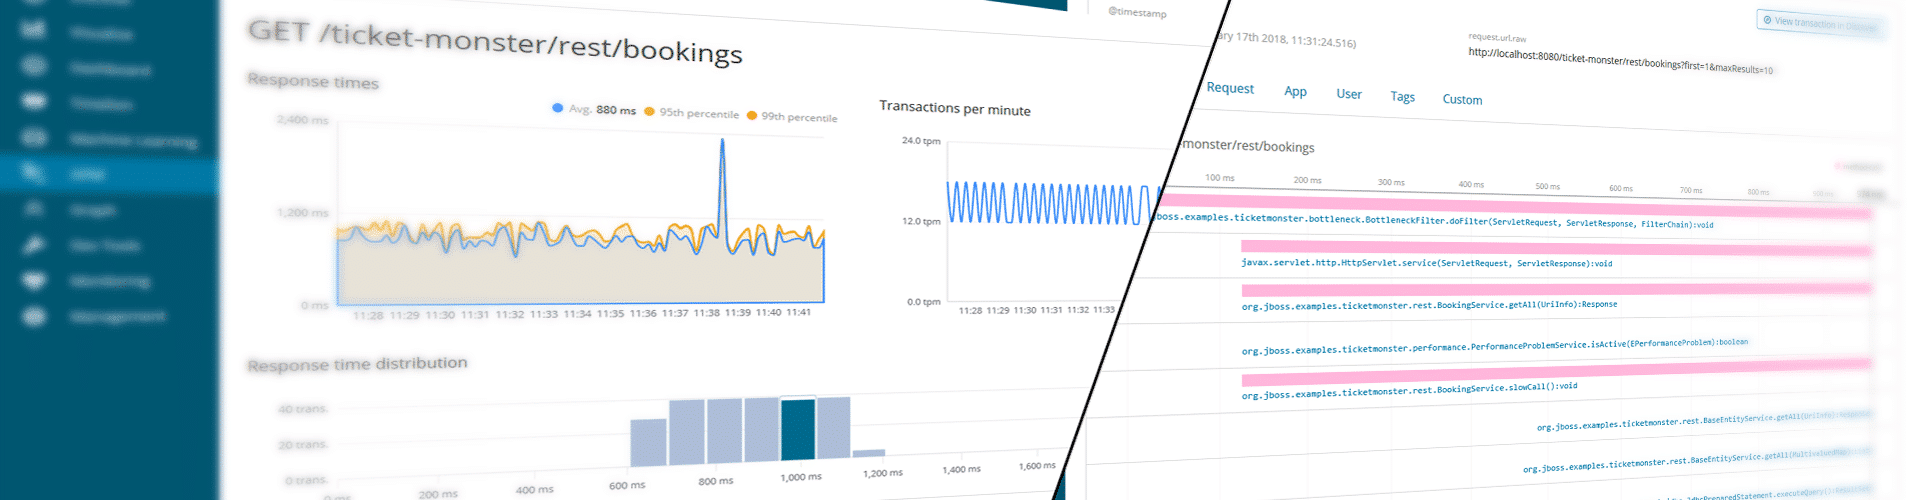 Java Application Performance Management with the Elastic Stack